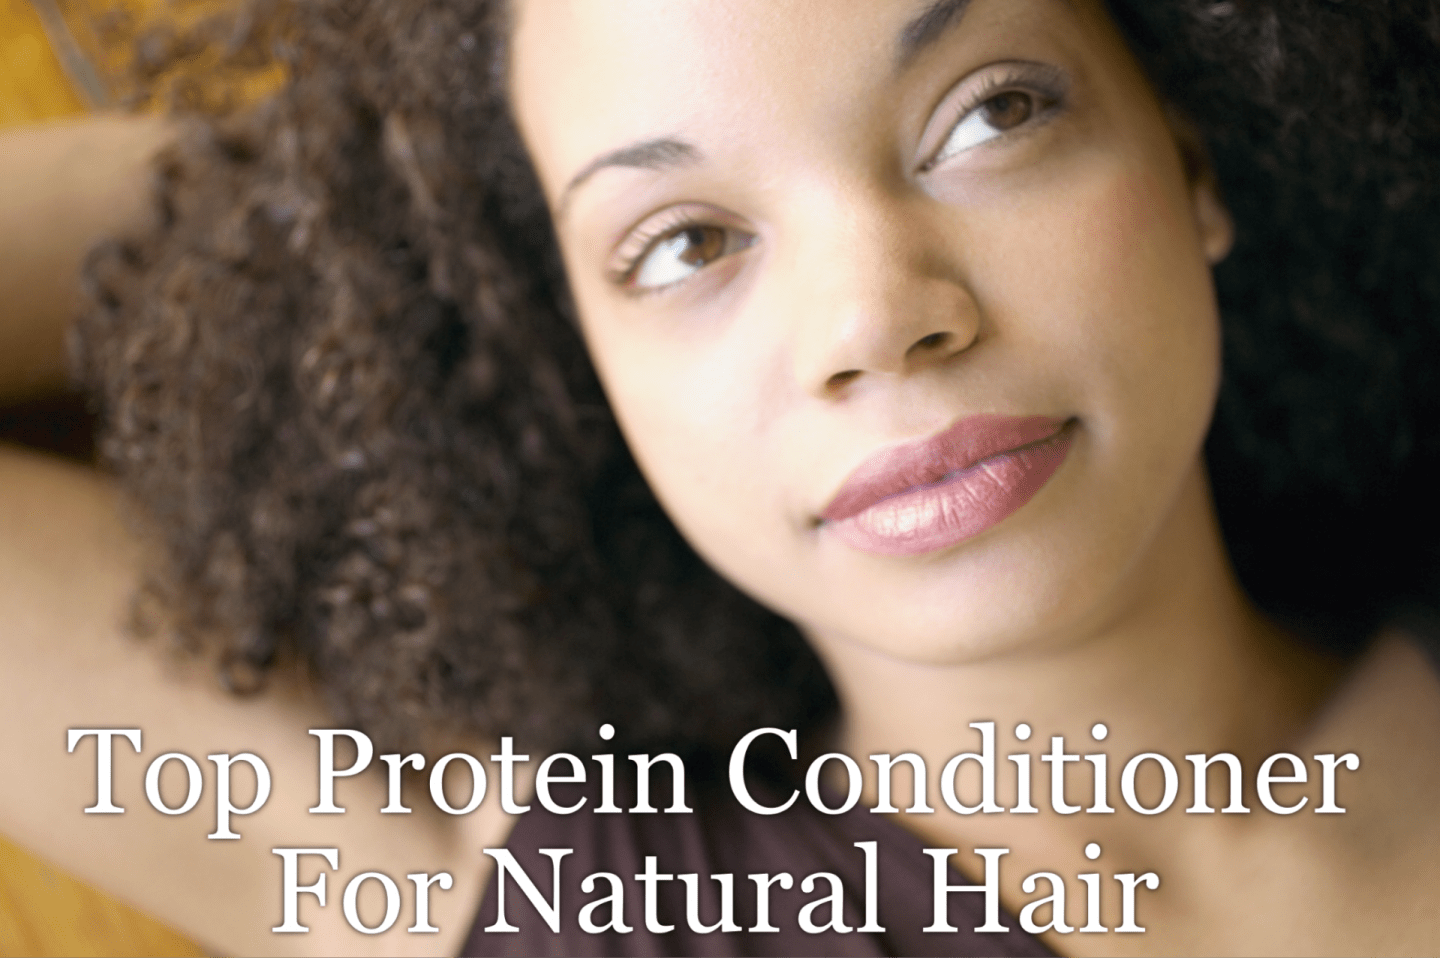 Protein conditioner is a vital tool in the moisture to protein balance our hair needs to stay healthy. We've got a list of our faves that you will love!